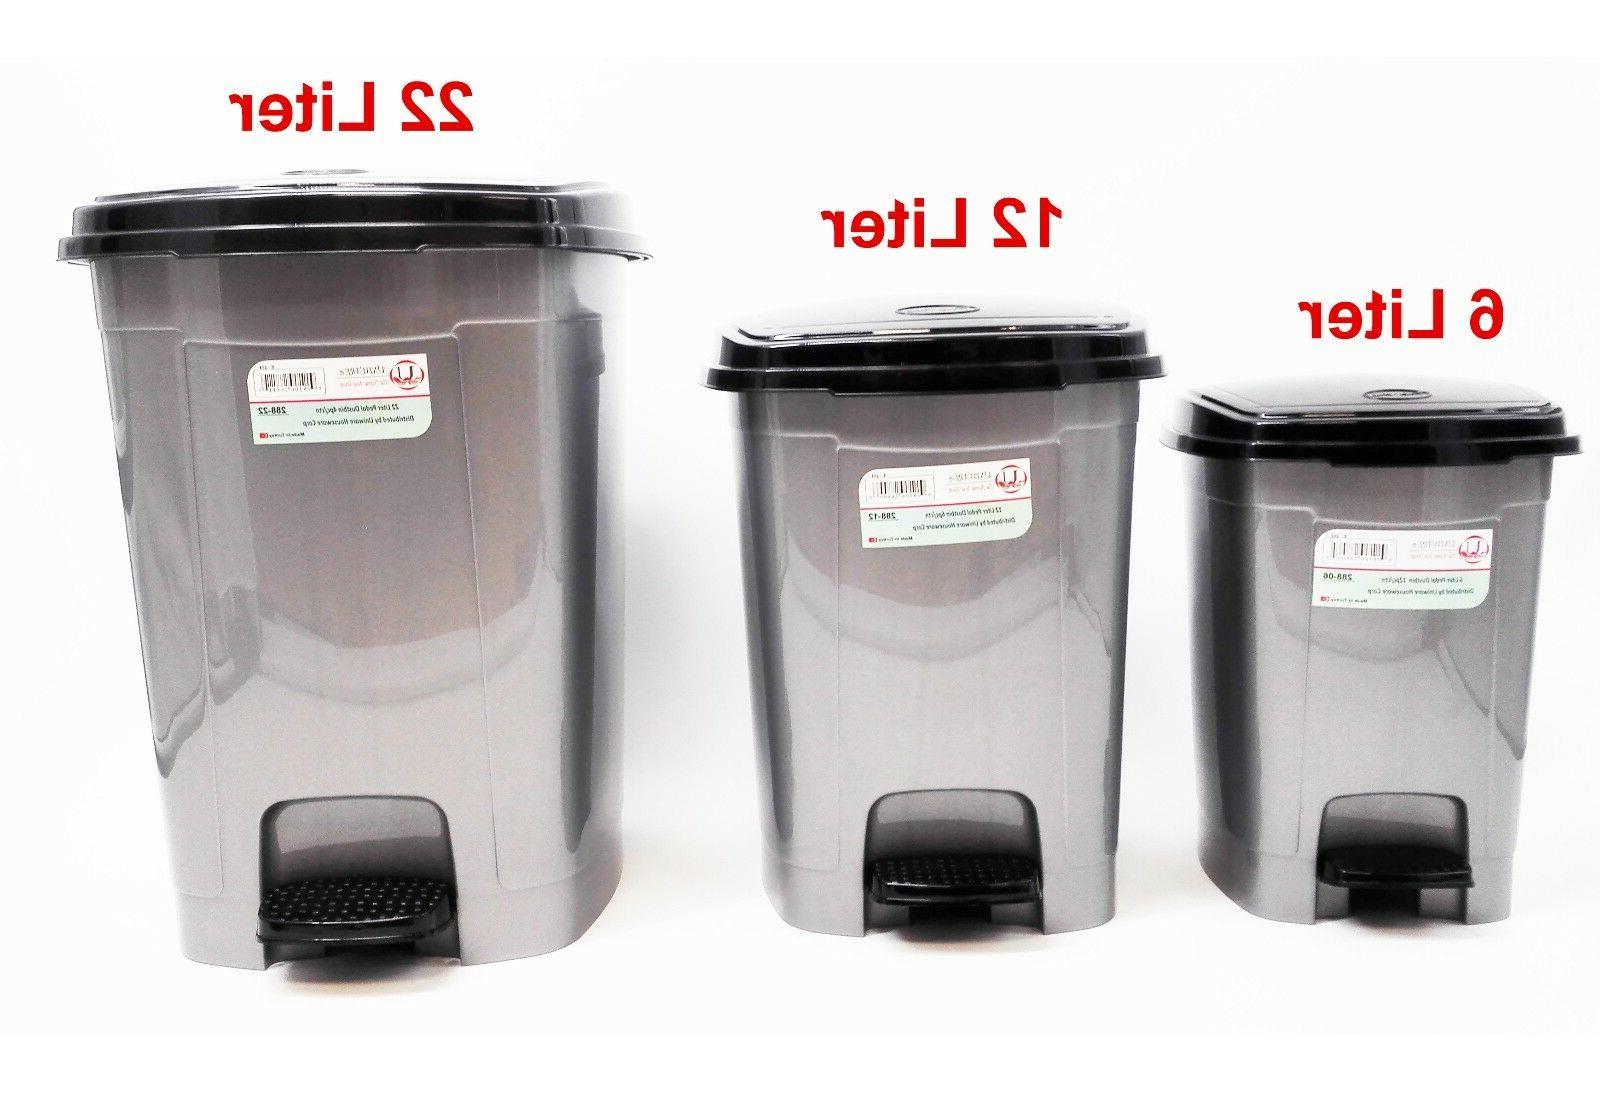 288 pedal dustbin trash can for toilet